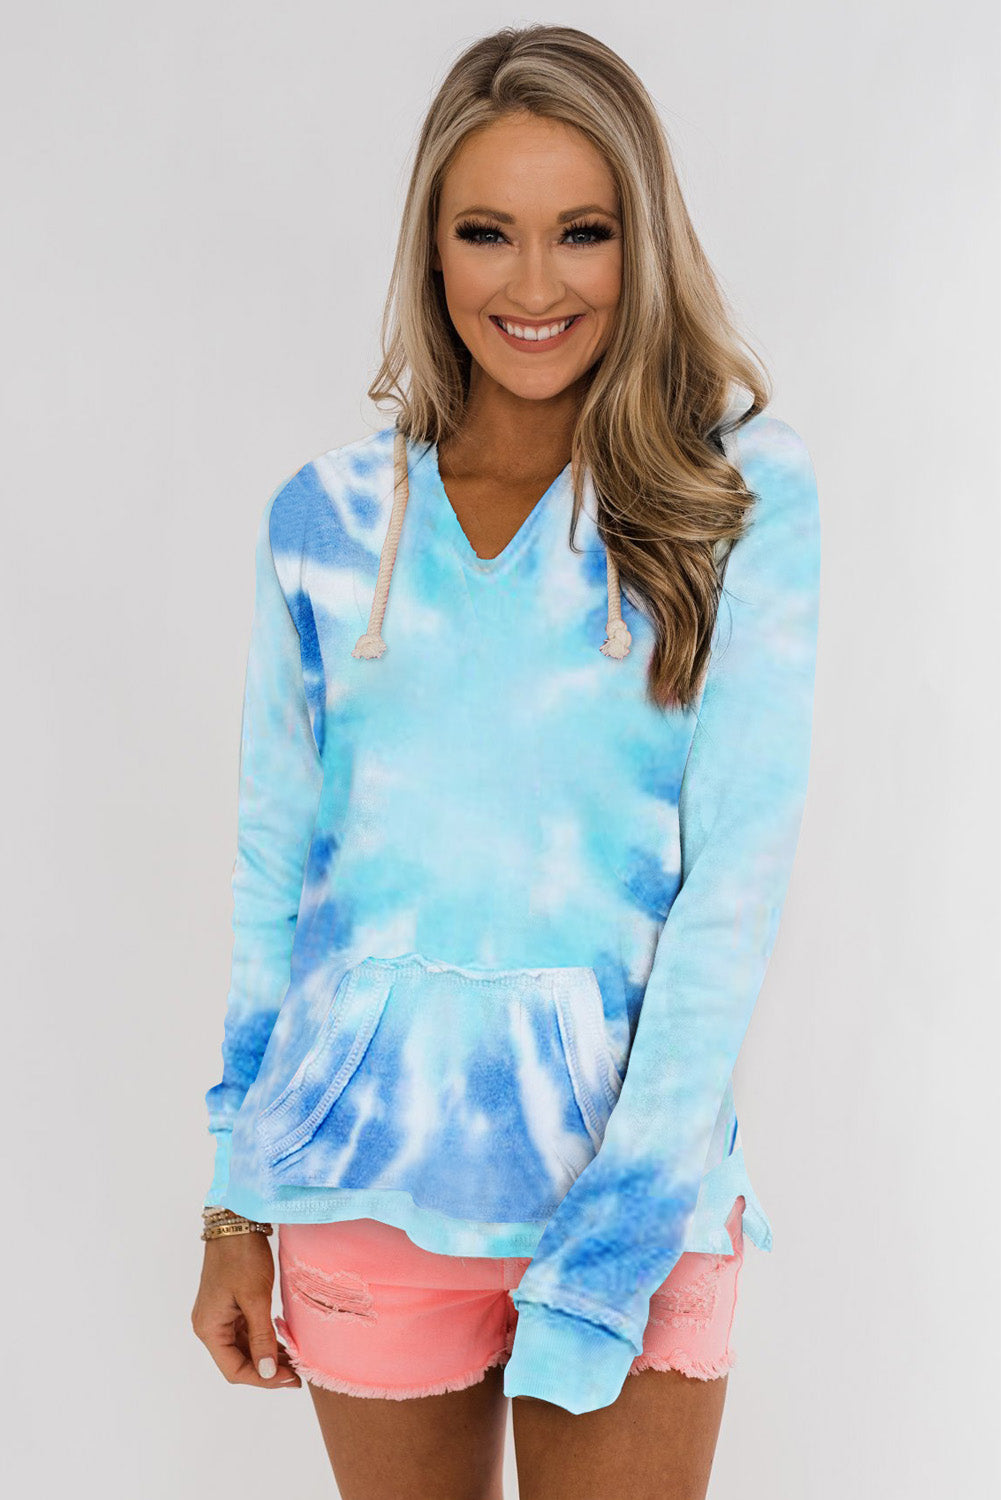 Sky Blue Tie-dye Pattern Drawstring Pullover Hoodie Sweatshirts & Hoodies Discount Designer Fashion Clothes Shoes Bags Women Men Kids Children Black Owned Business